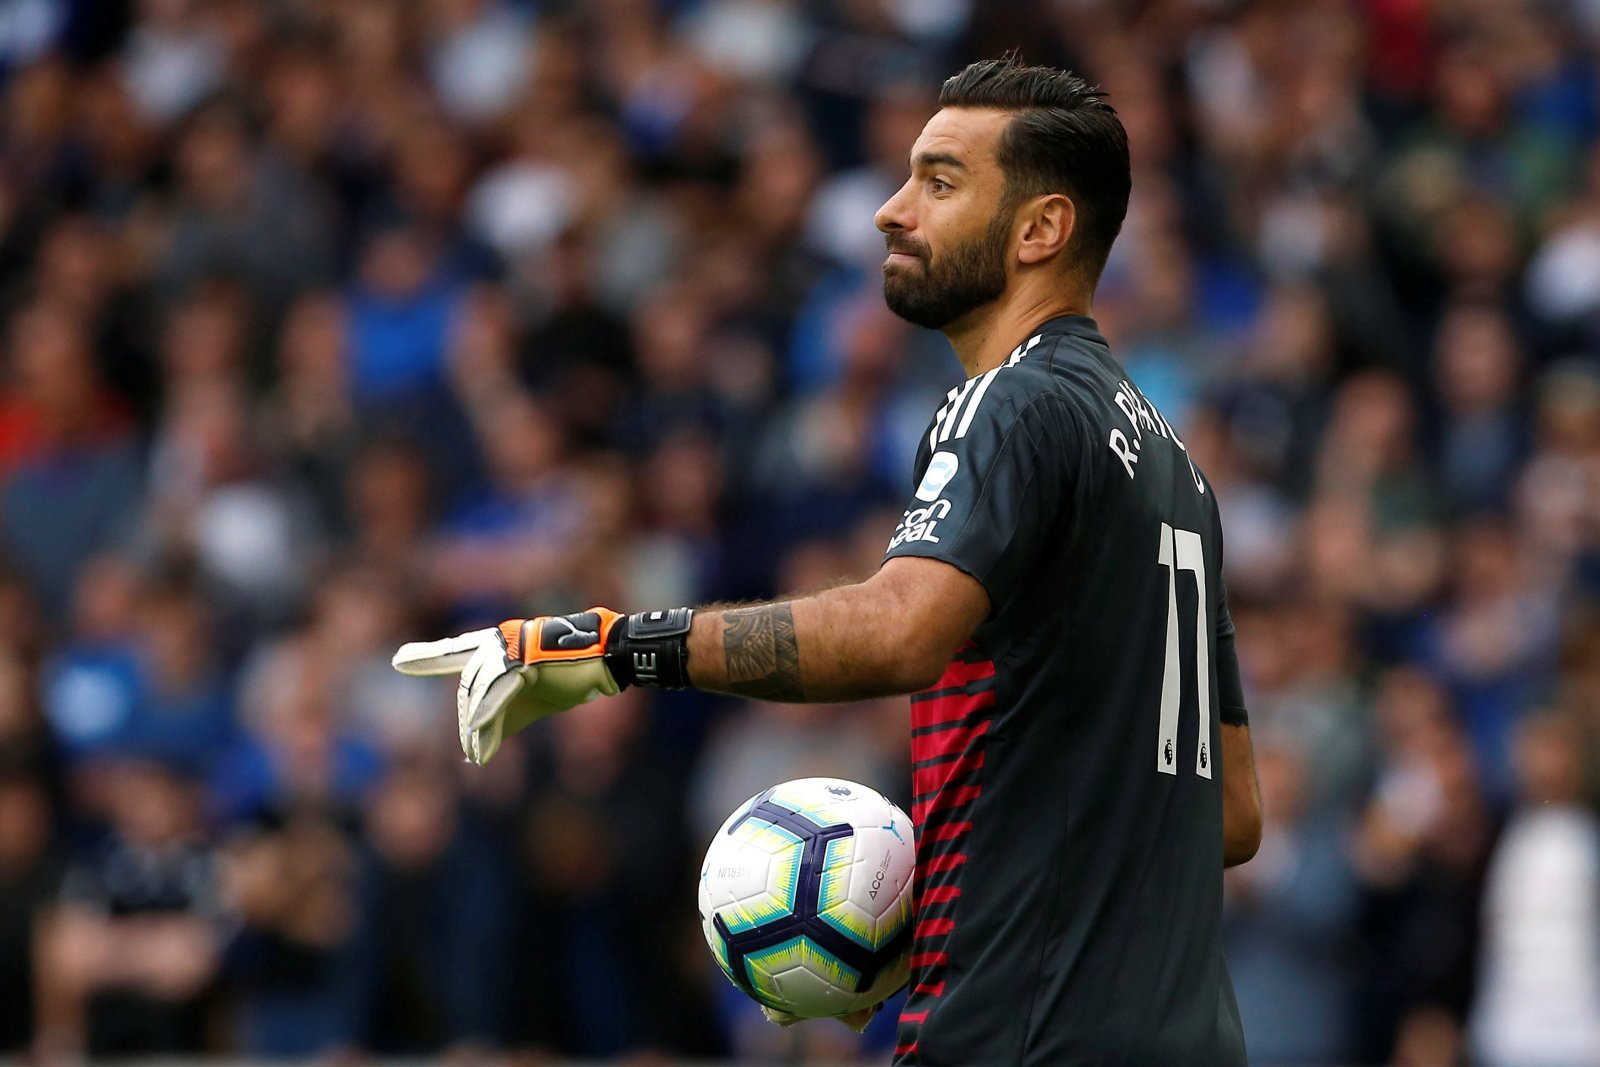 Wolves: Fans laud Rui Patricio after penalty save against Manchester United